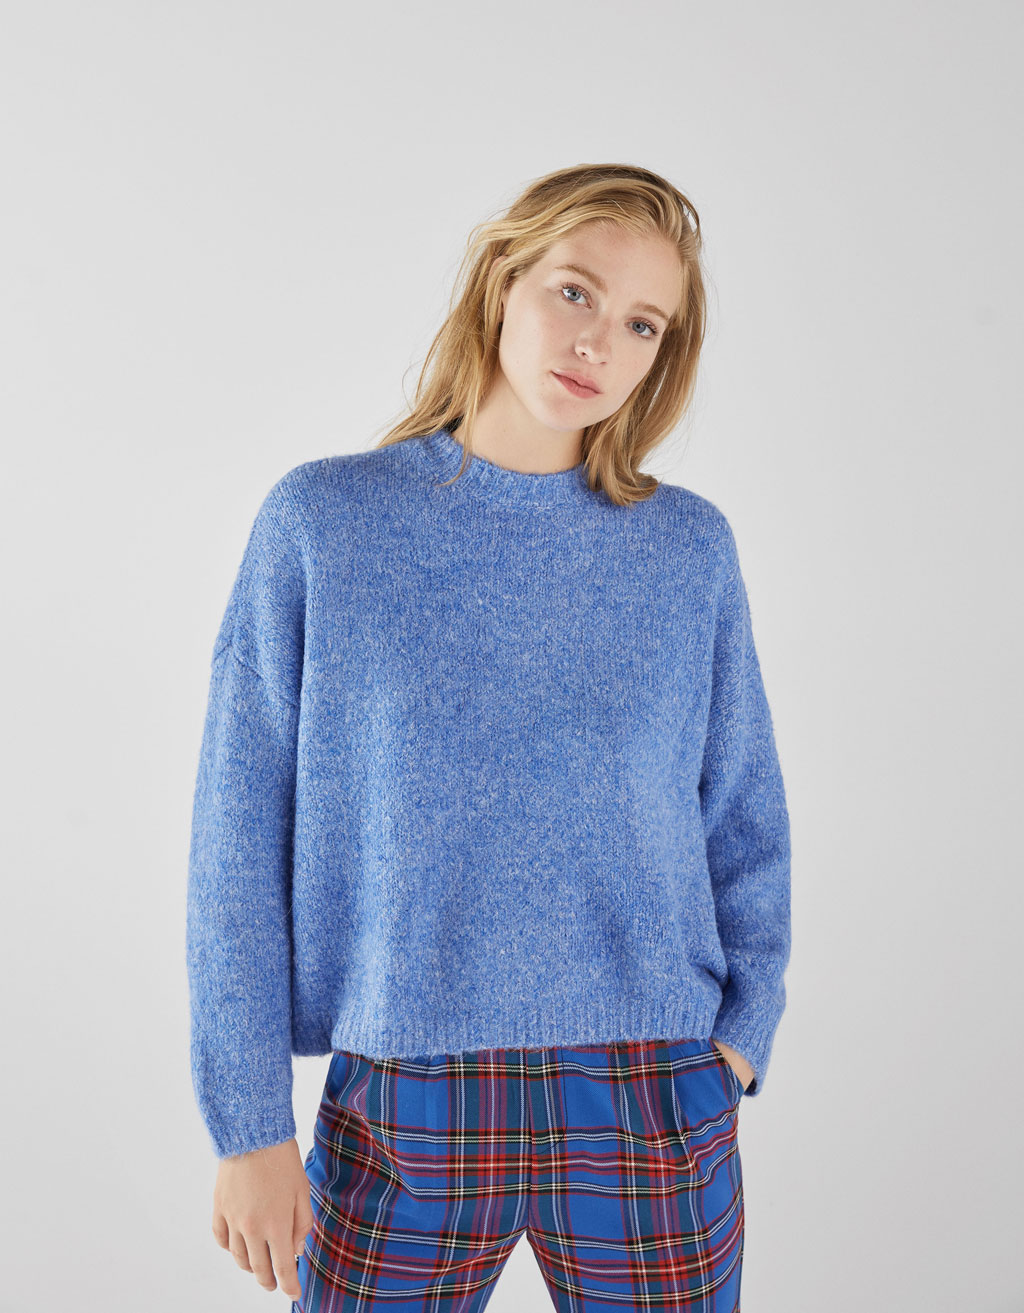 Cropped long sleeved jumper